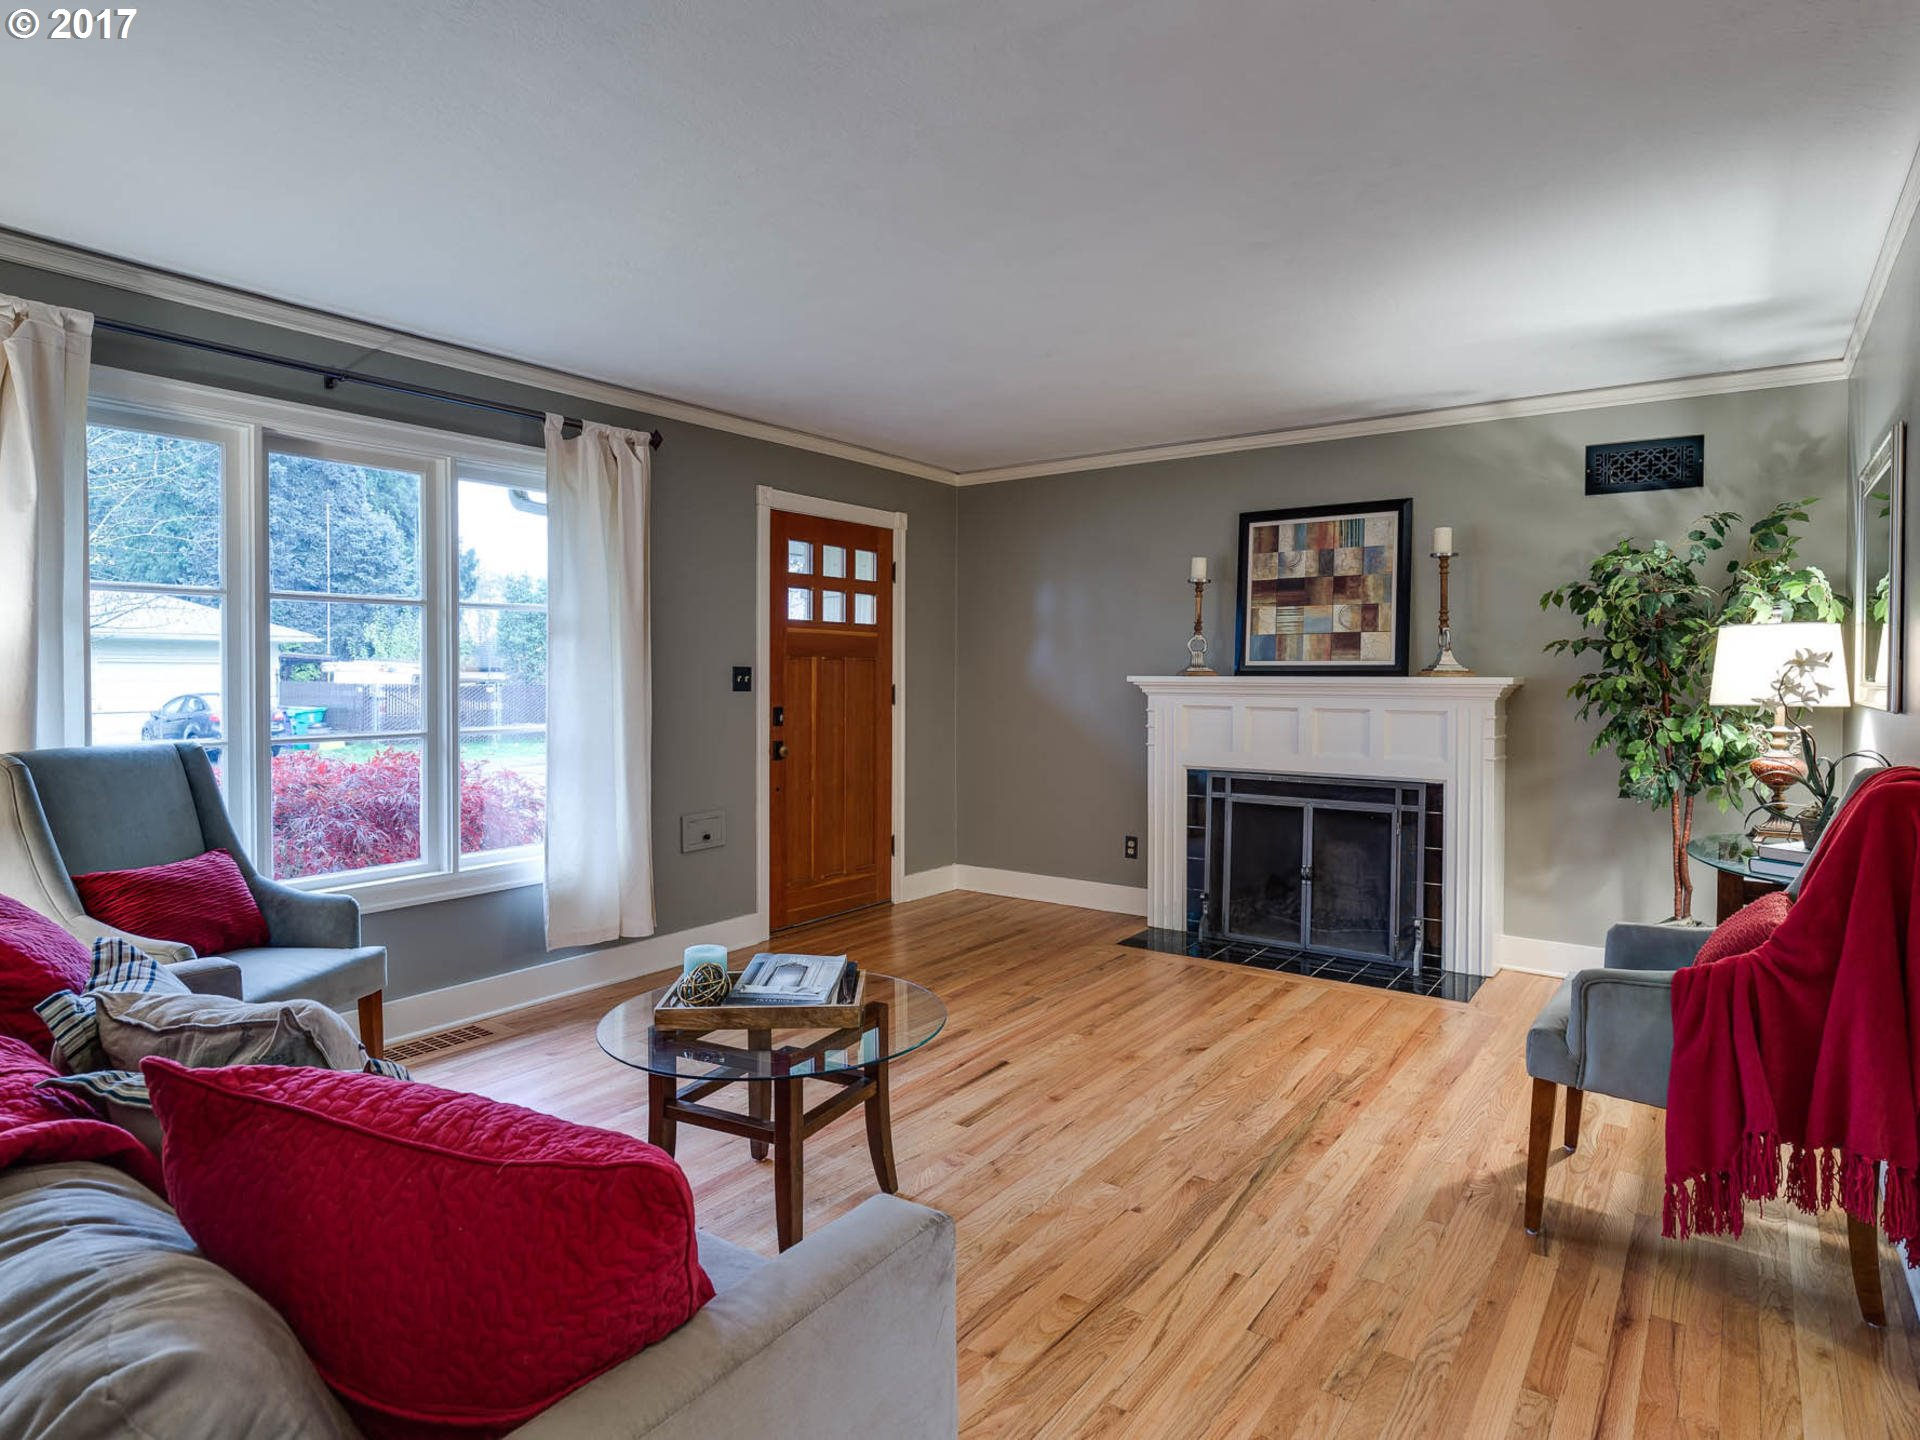 816 sq. ft 2 bedrooms 1 bathrooms  House For Sale,Portland, OR